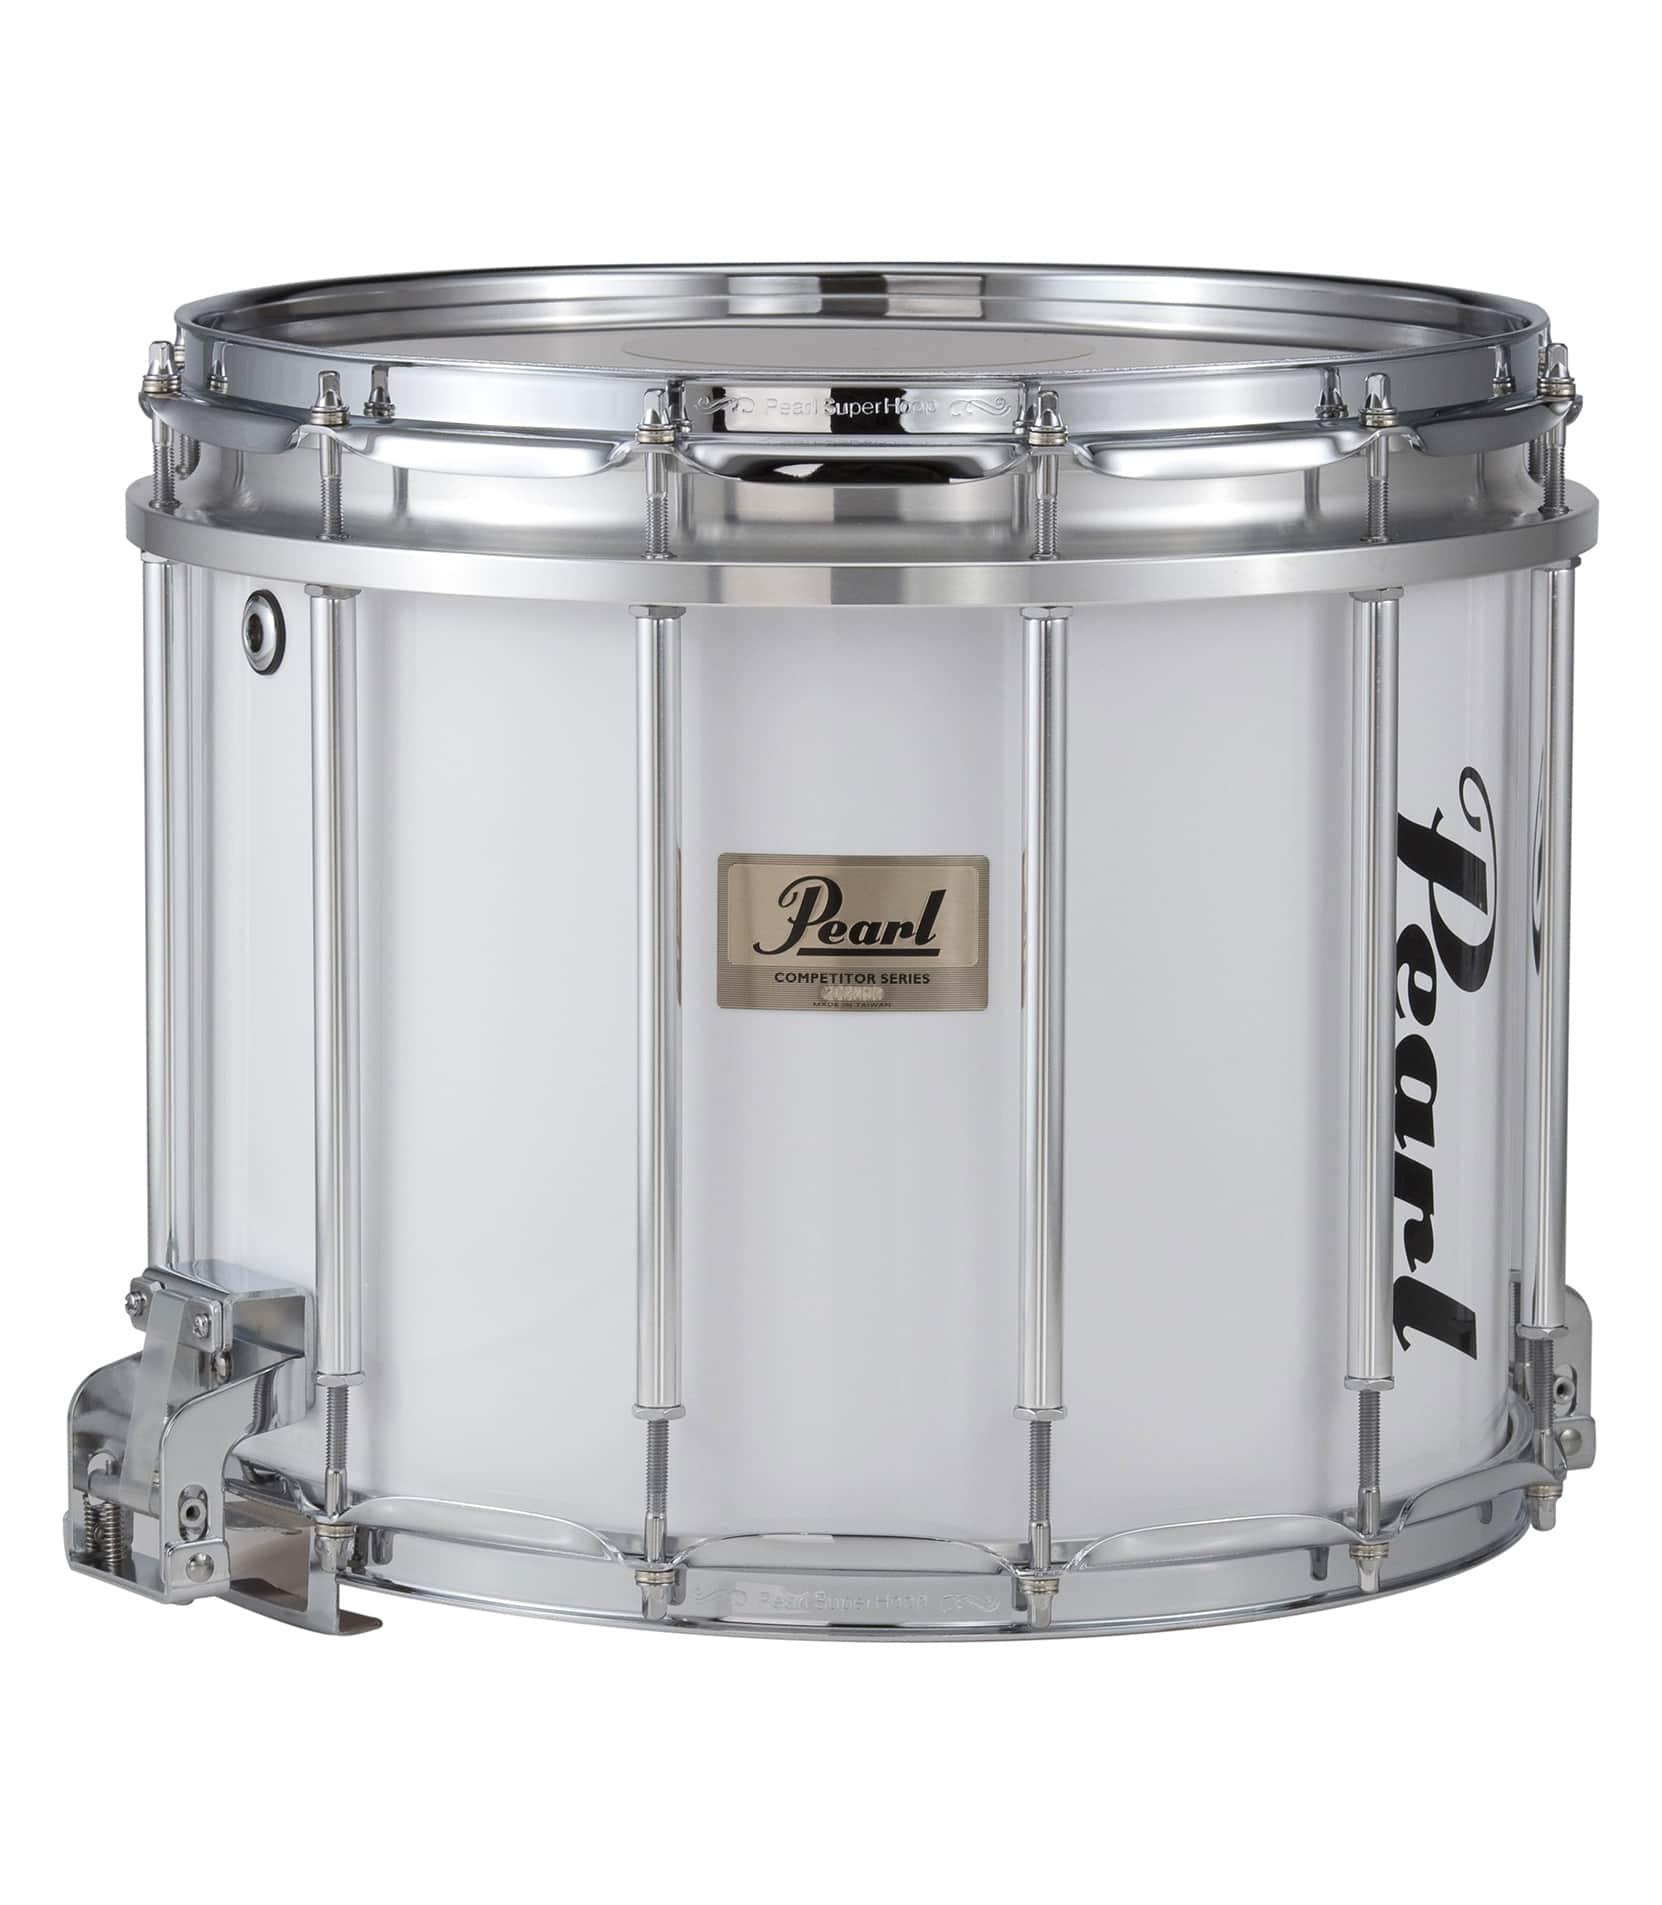 Buy Pearl - CMS1412 C 14x12 Competitor Marching Snare Drum